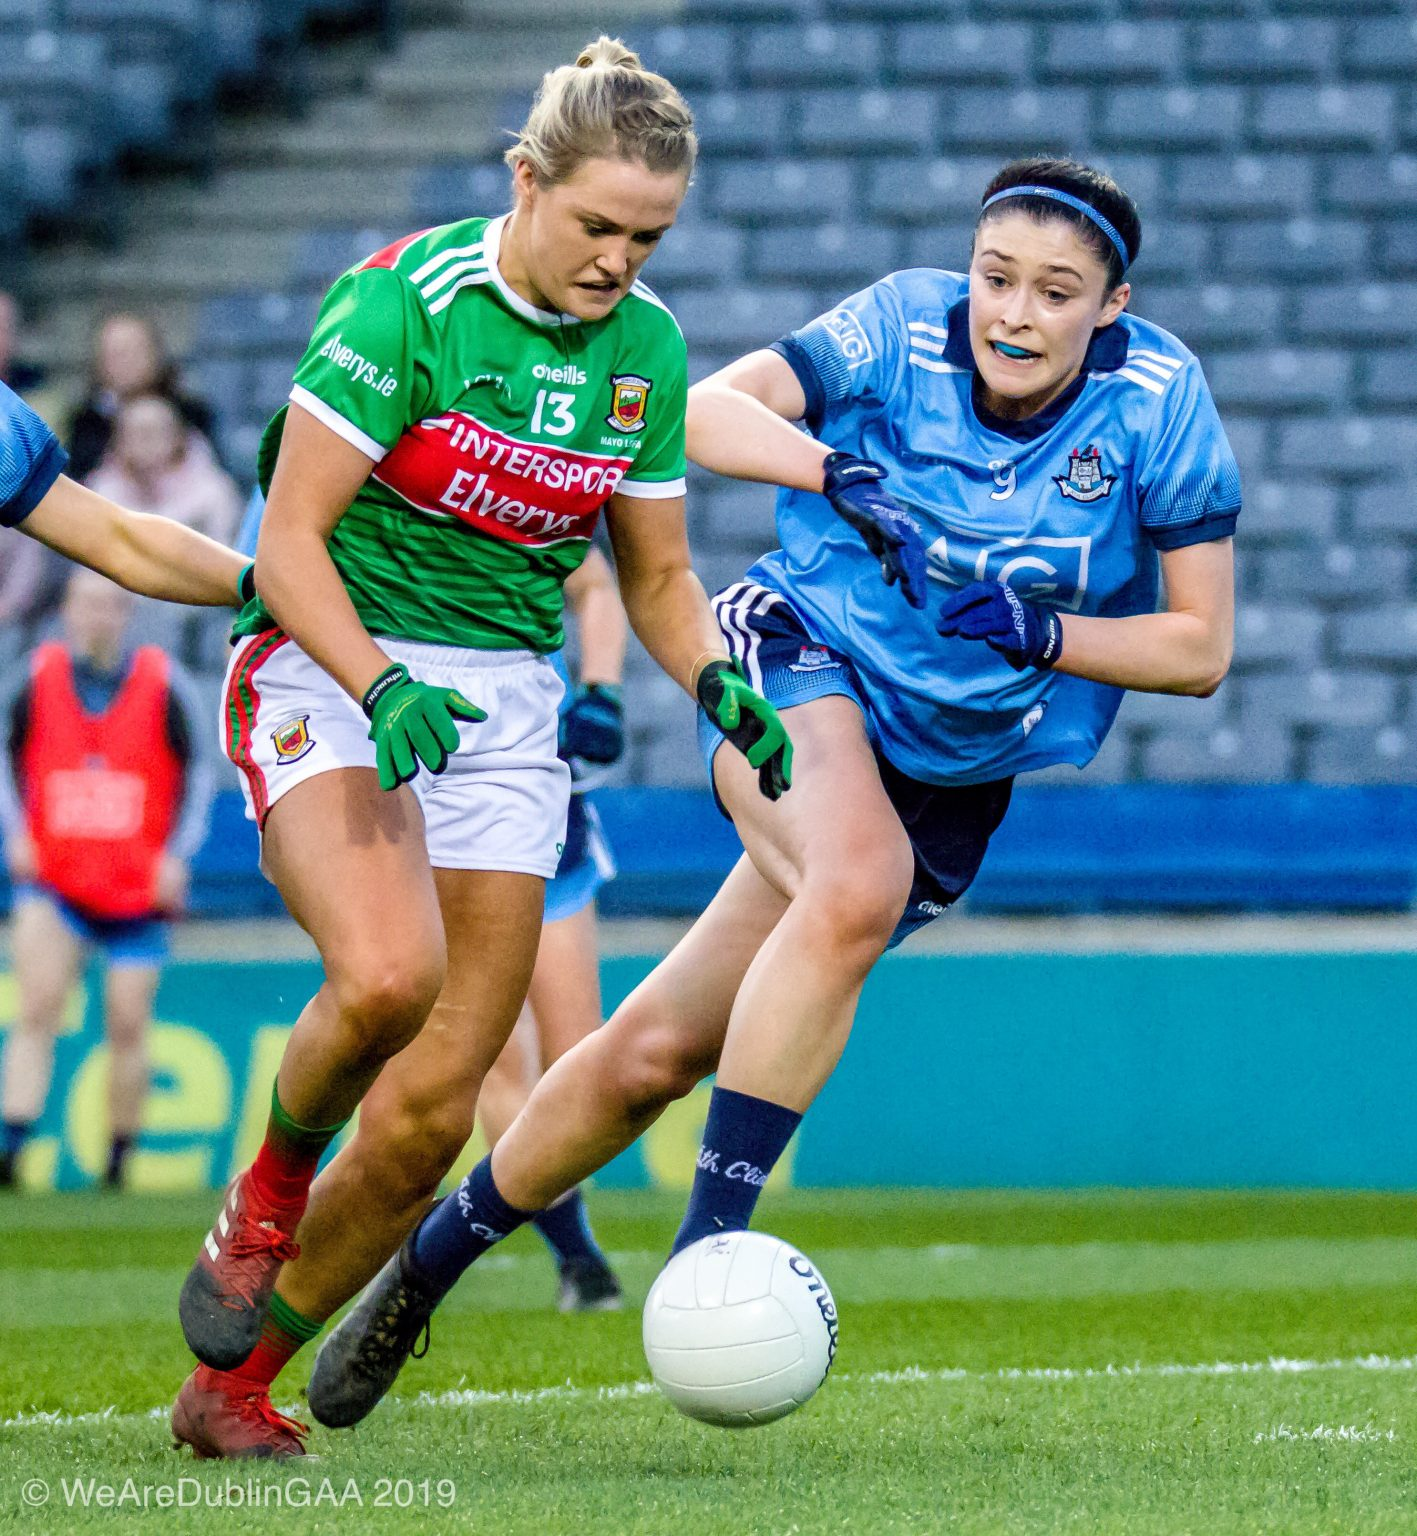 A dublin Ladies footballer in a sky blue jersey and navy shorts and a Mayo player in a green and red jersey and white shorts battle for the ball during their Lidl National Football League game.